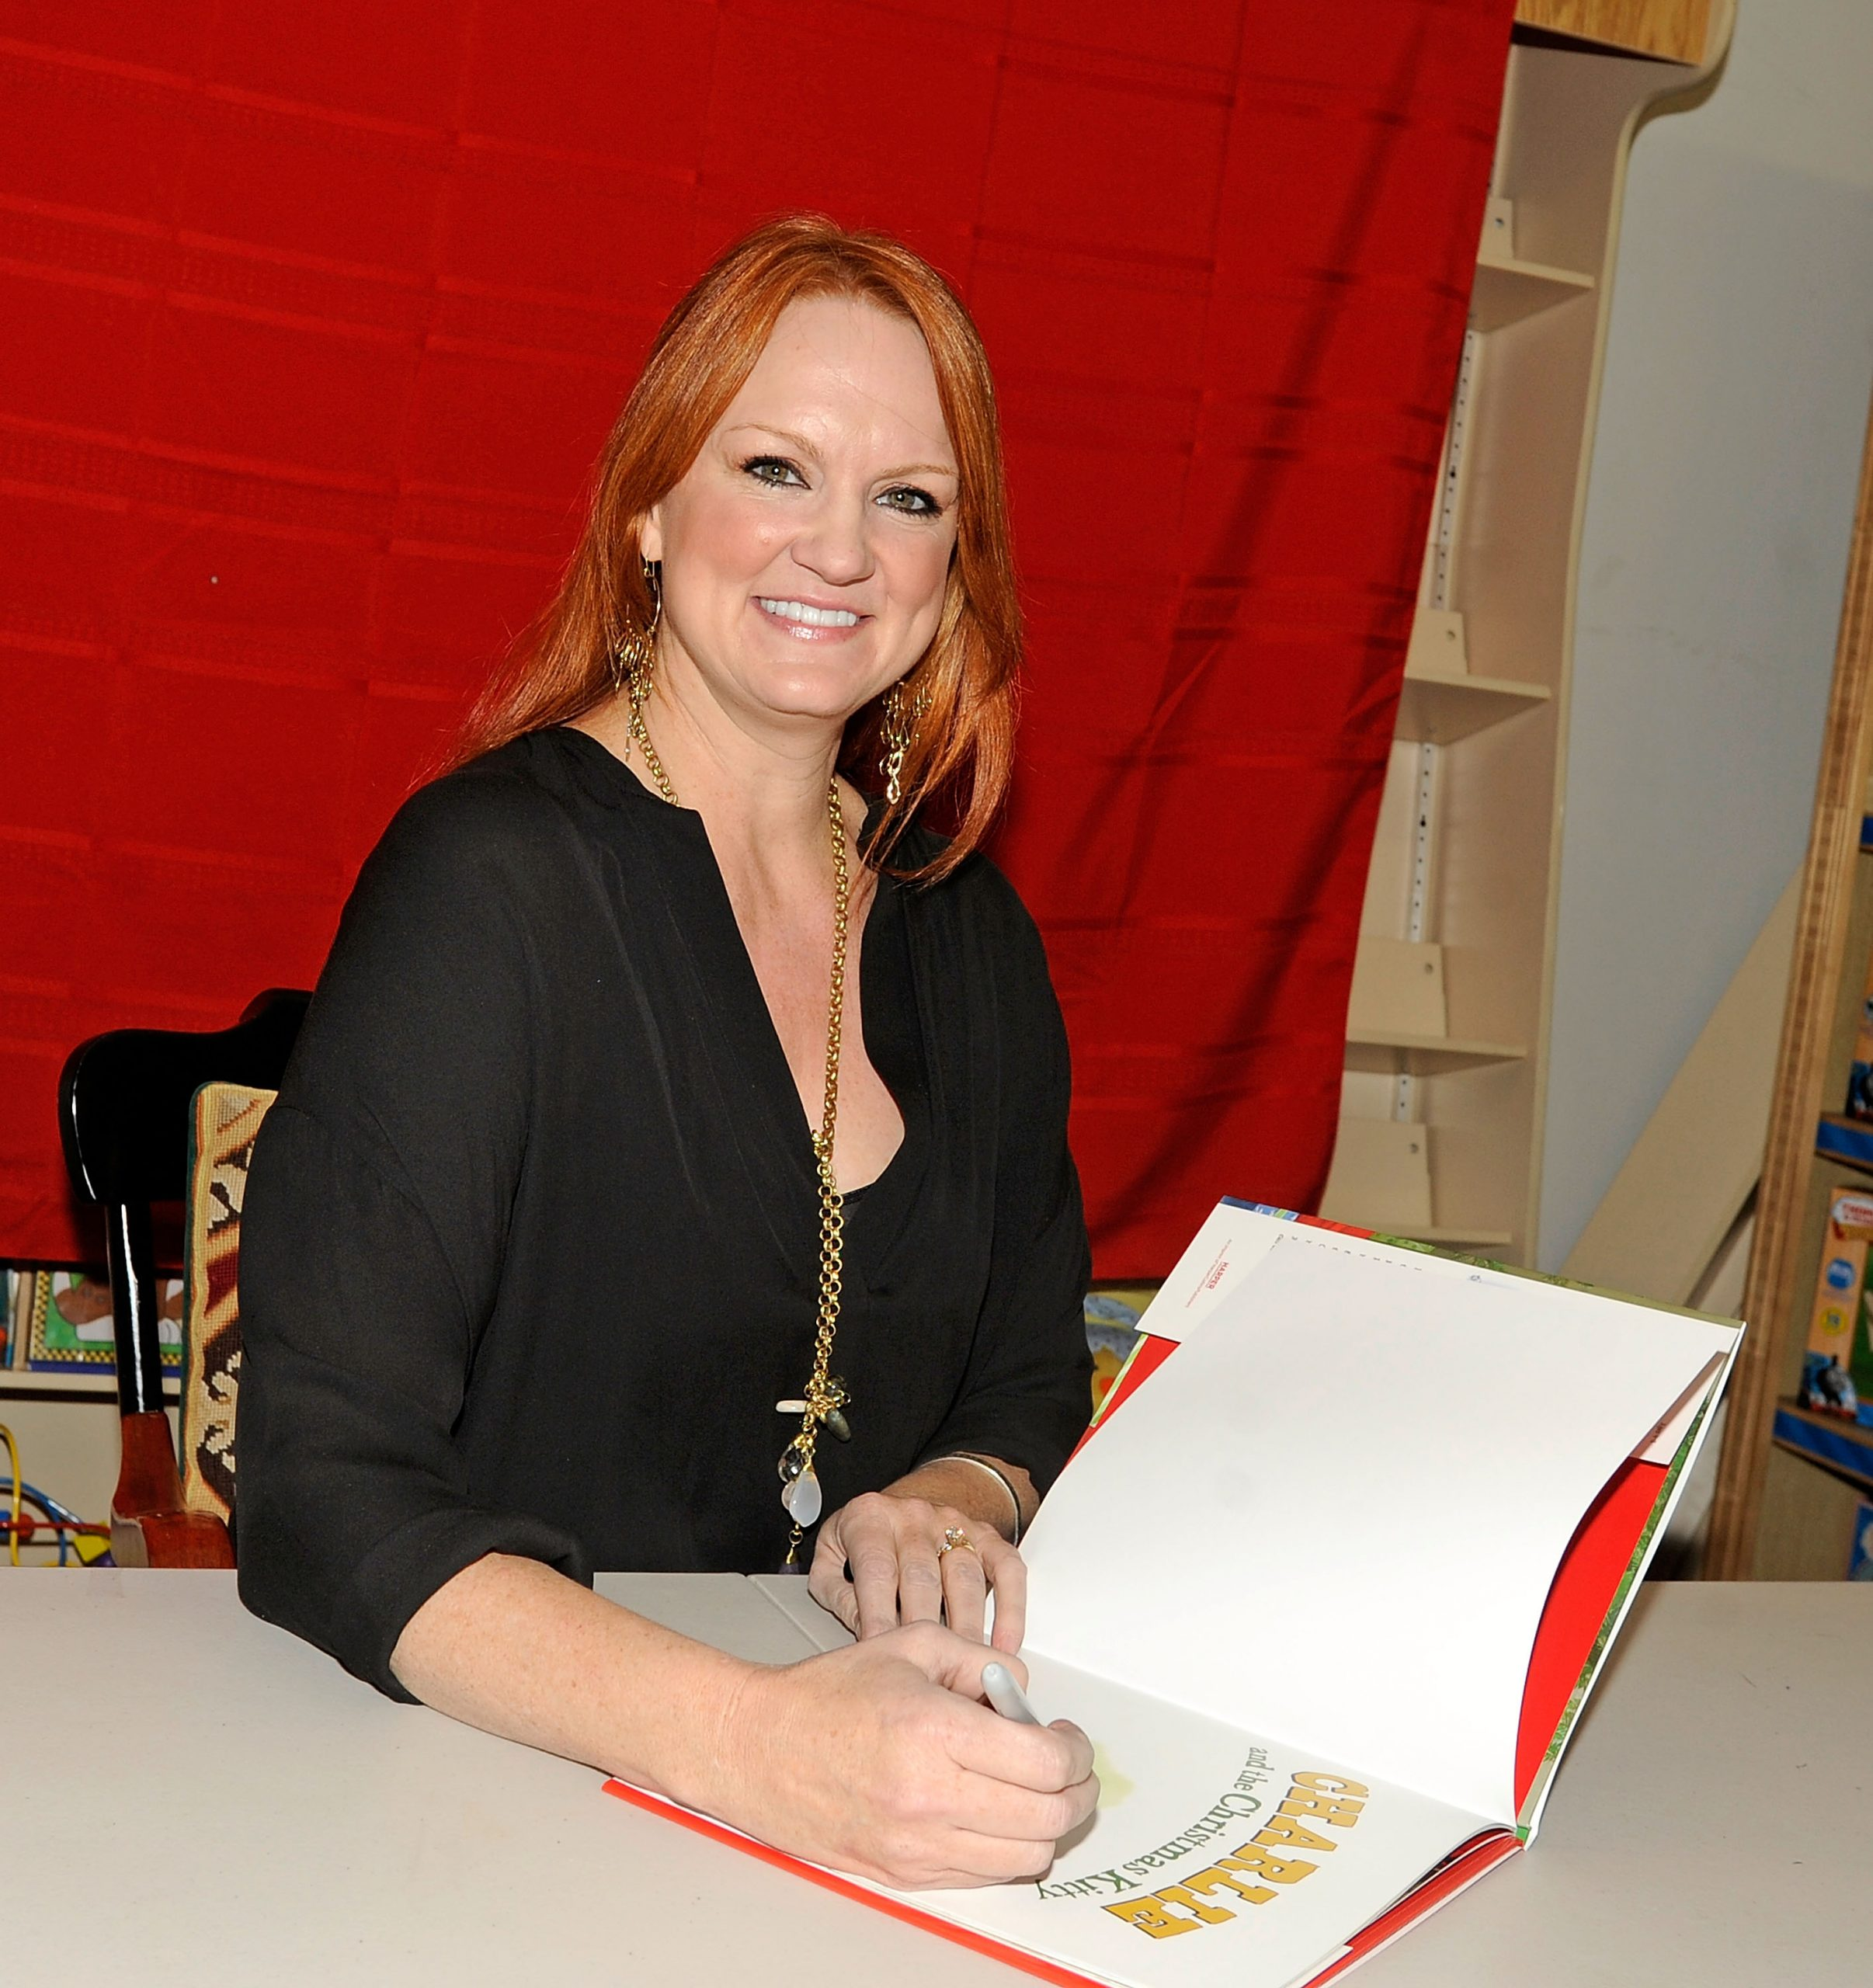 'The Pioneer Woman' Ree Drummond signs copies of her book 'Charlie and the Christmas Kitty'